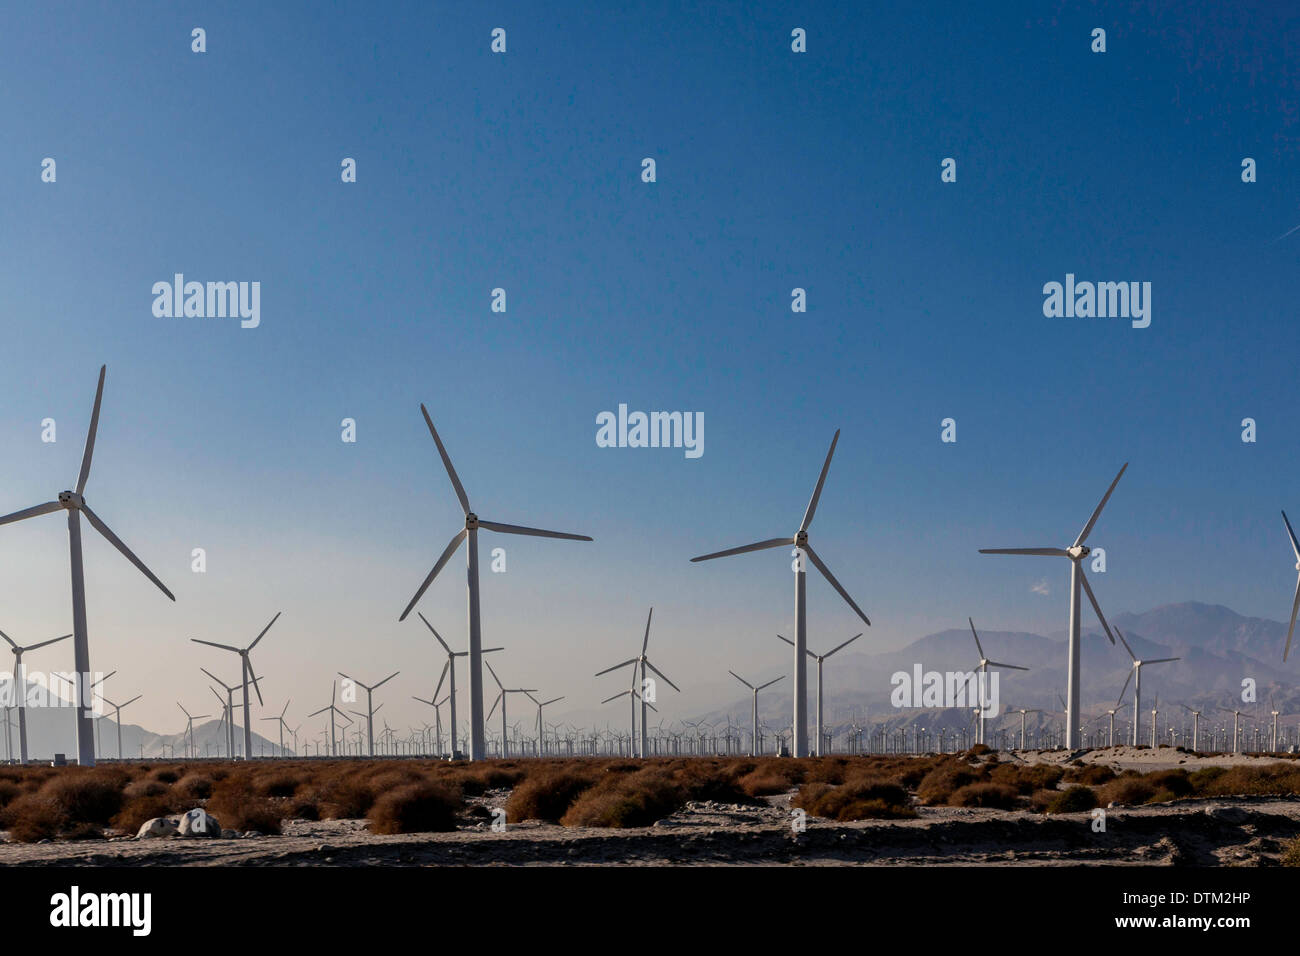 Wind farms in Palm Springs area of California Stock Photo